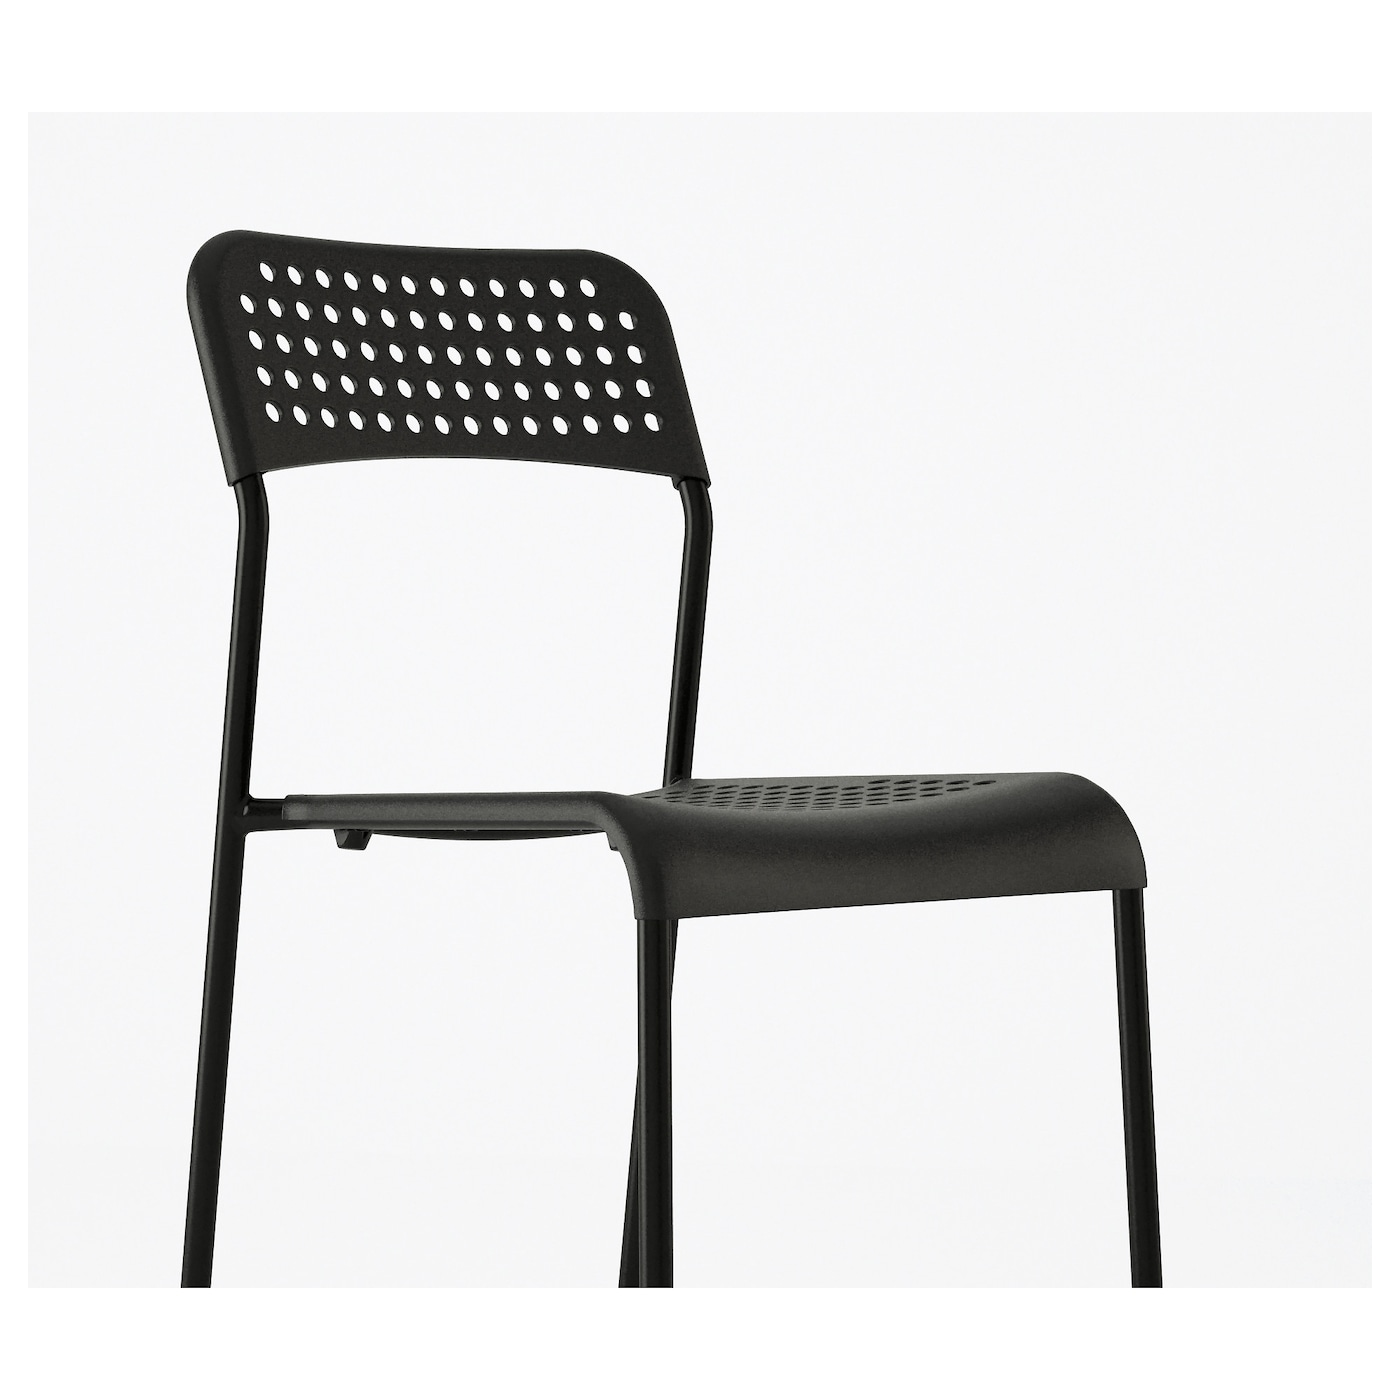 Adde chaise noir ikea for Chaise noire ikea